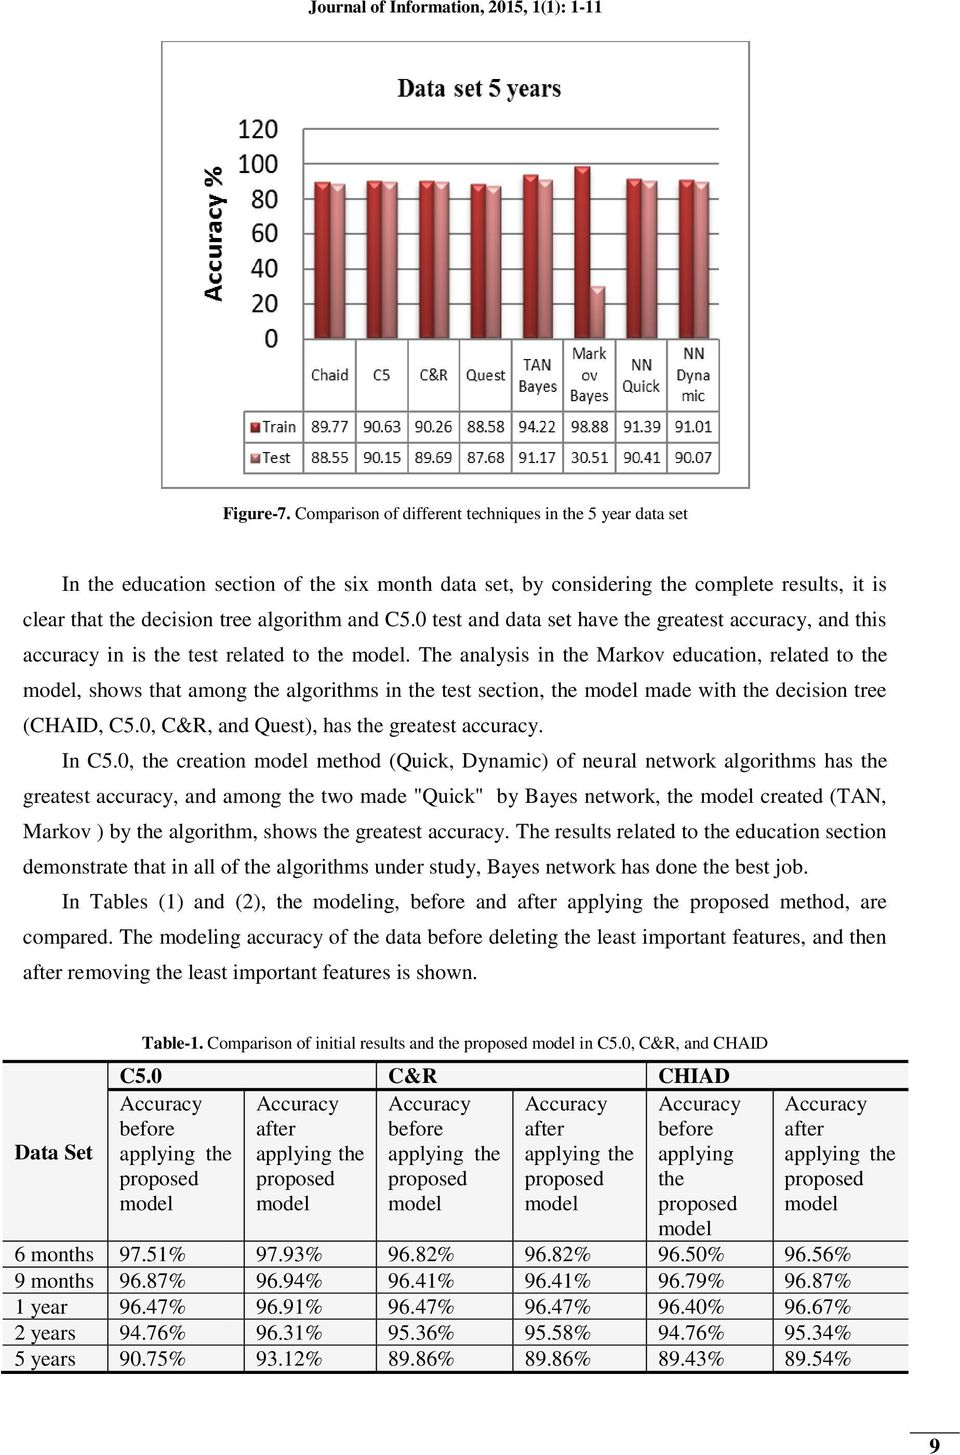 The analysis in Markov education, related to, shows that among algorithms in test section, made with decision tree (CHAID, C5.0, C&R, and Quest), has greatest accuracy. In C5.